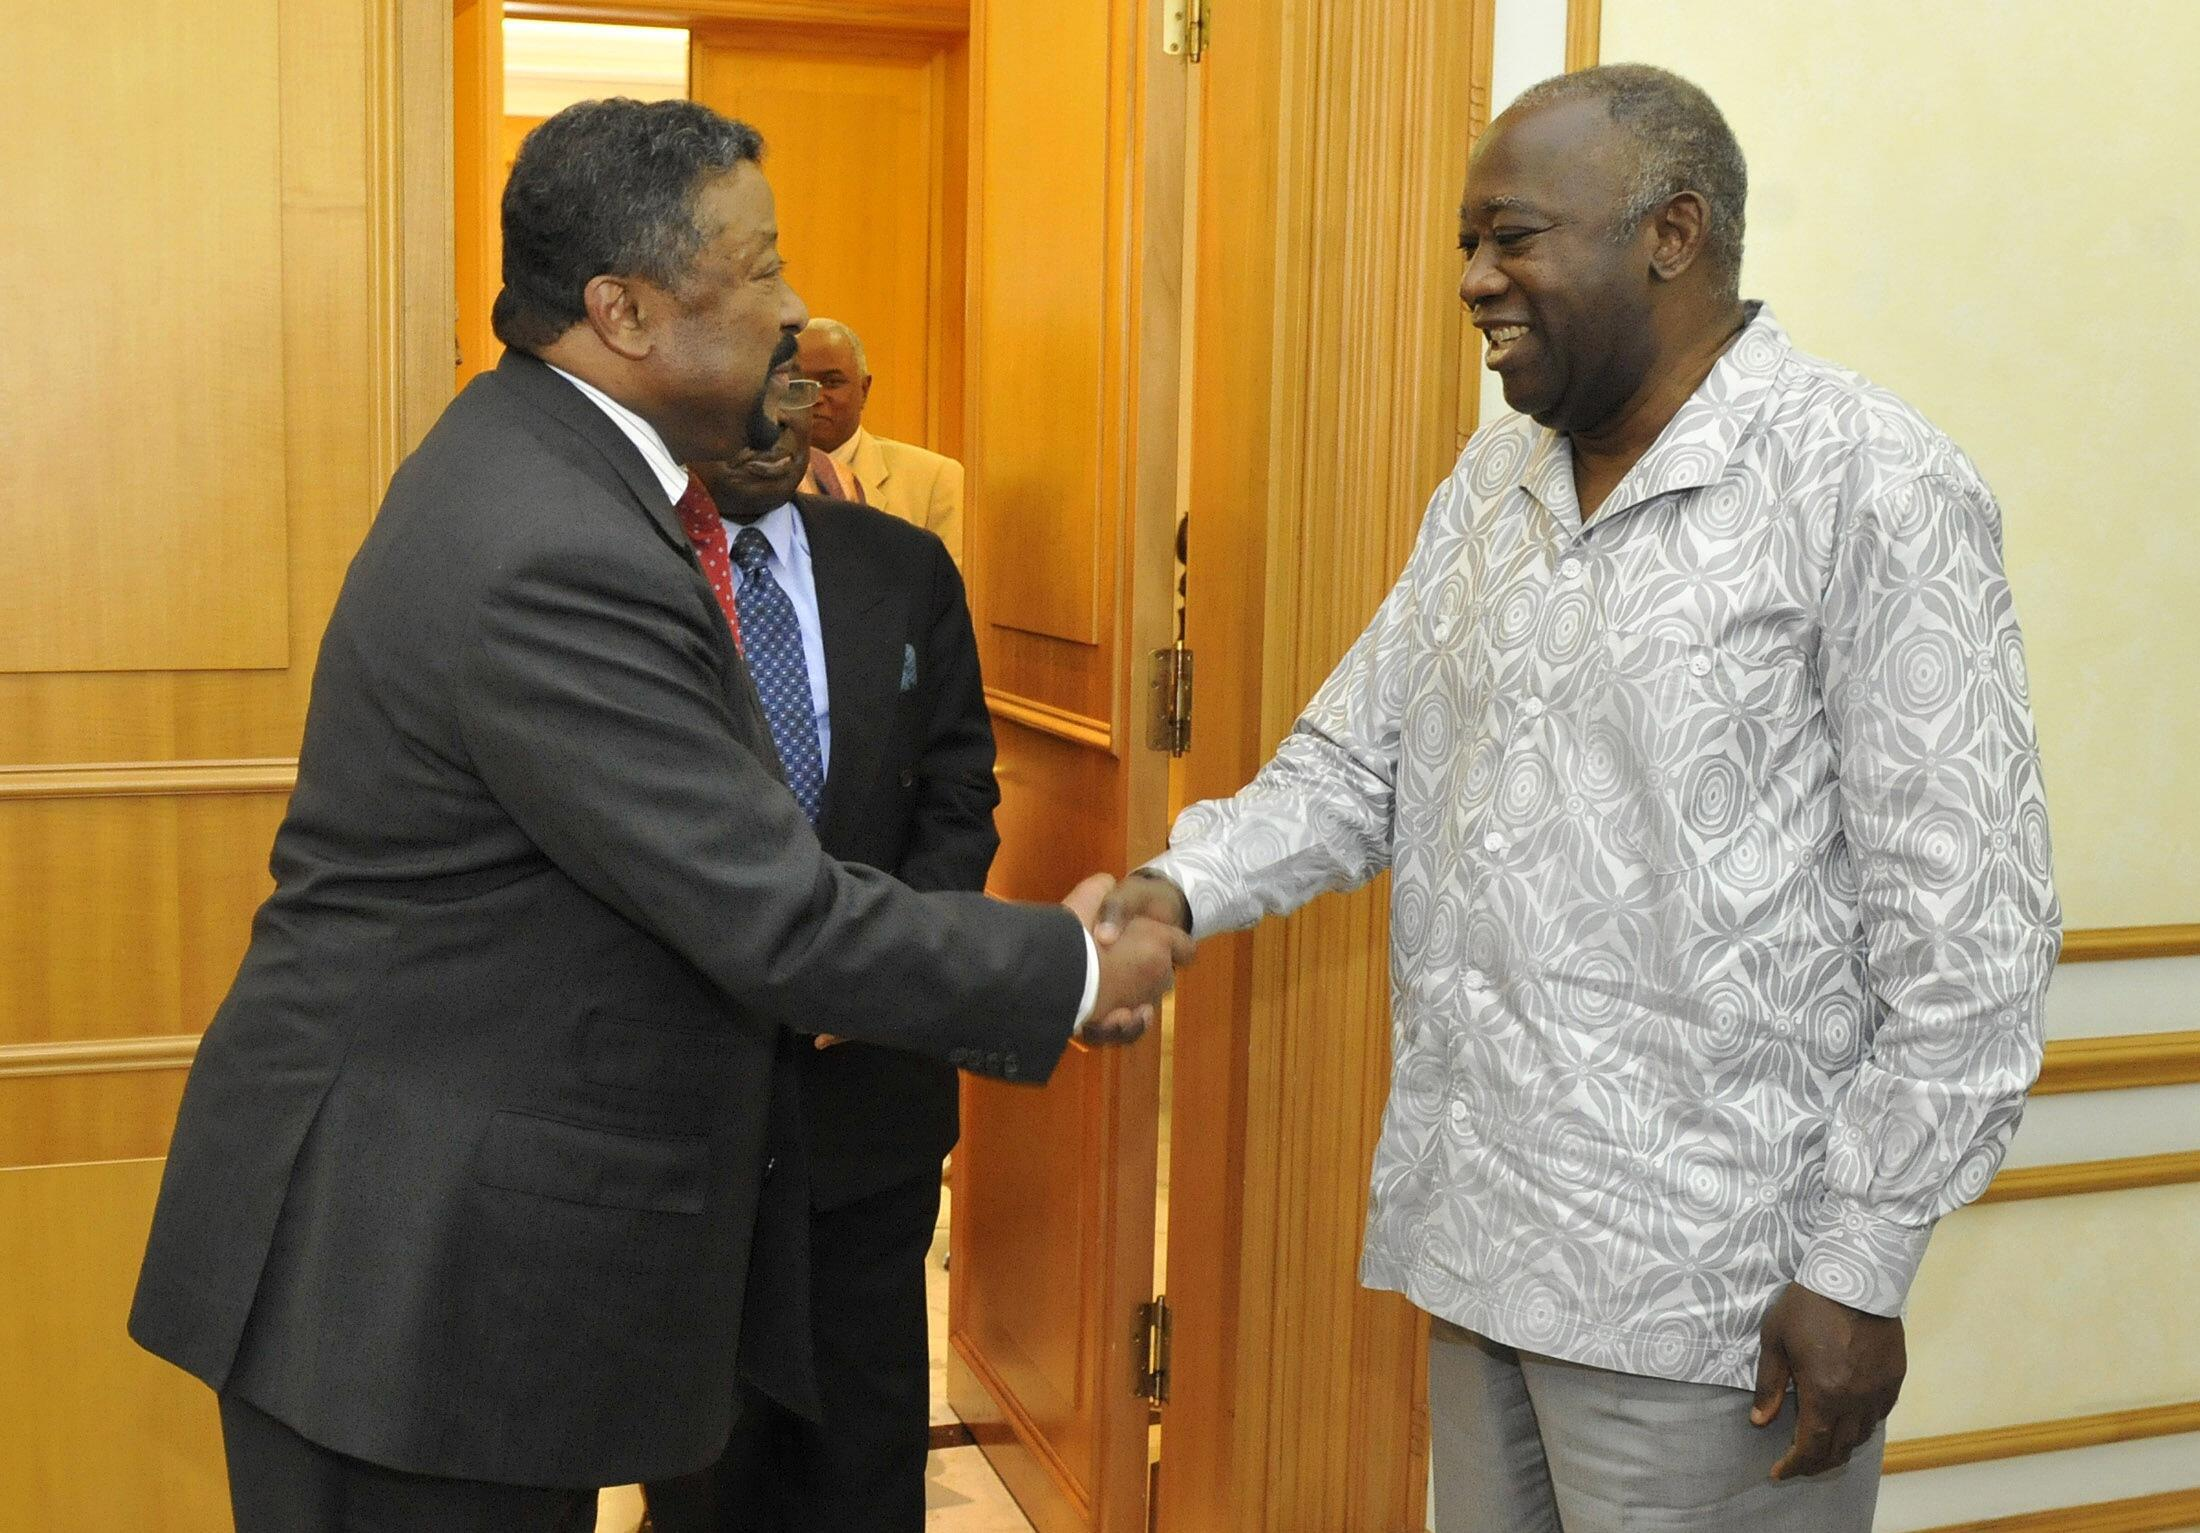 Jean Ping (L) meets Laurent Gbagbo at his residence Friday